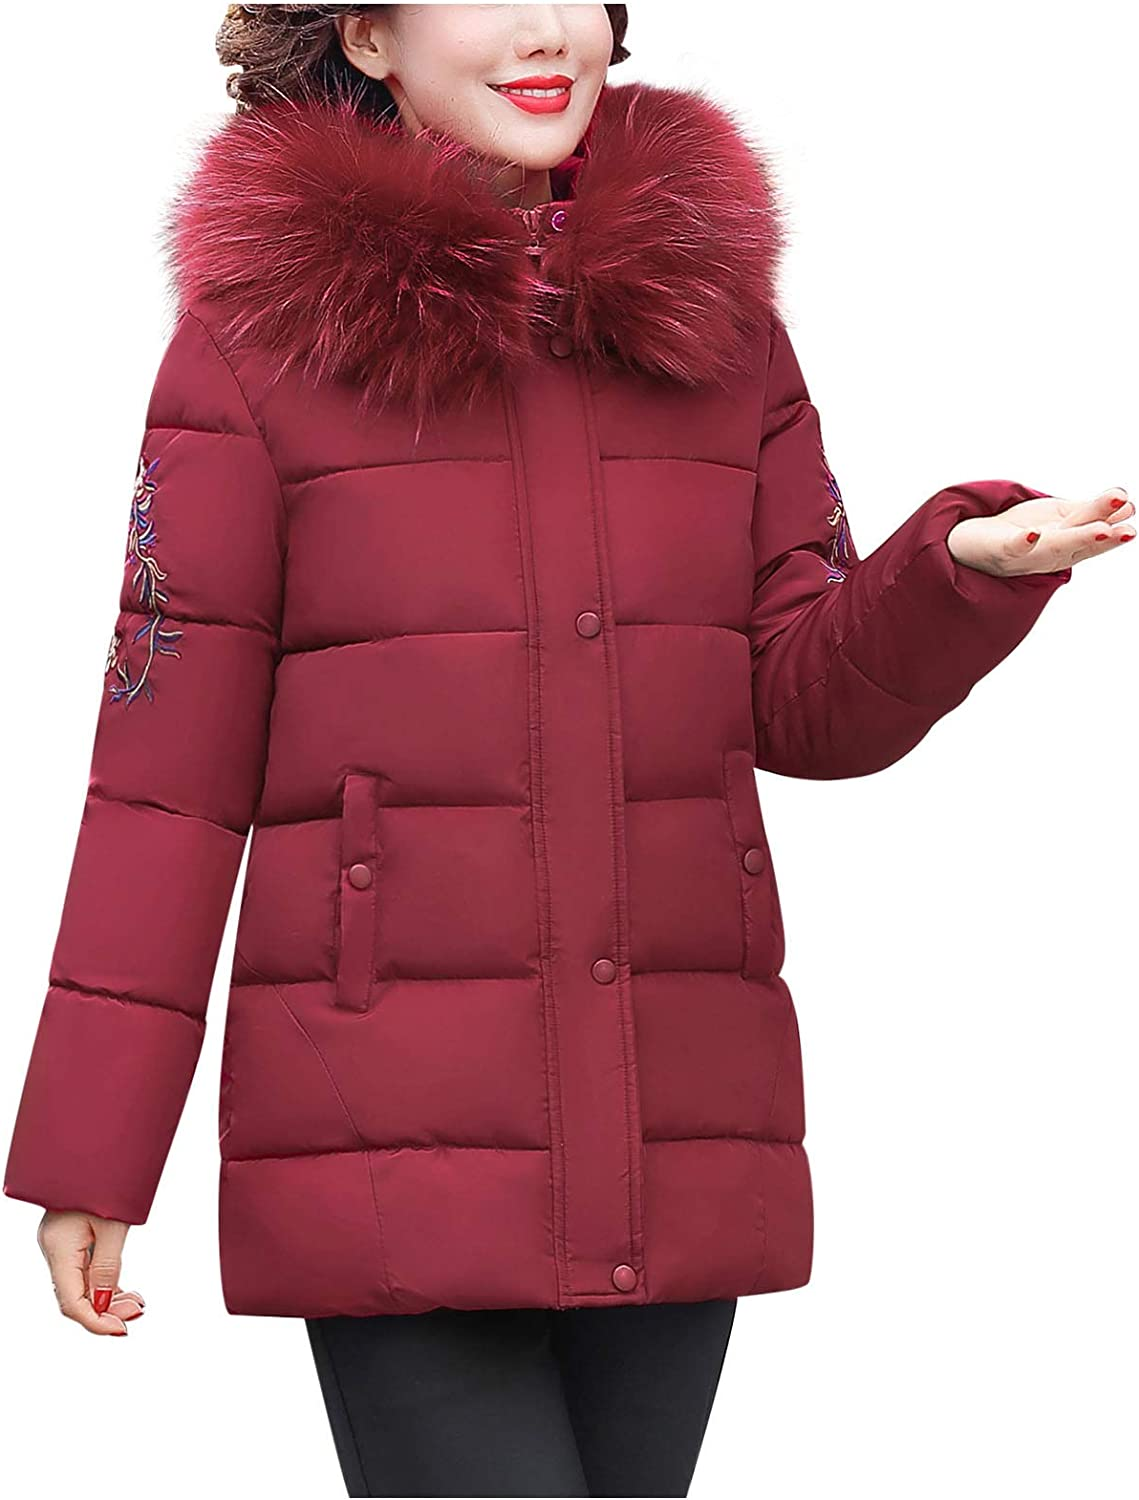 HGWXX7 Womens Overcoat Zip Up Faux Fur Hood Down Jacket Gifts for Mom Plus Size Thickening Winter Coats with Pocket Red